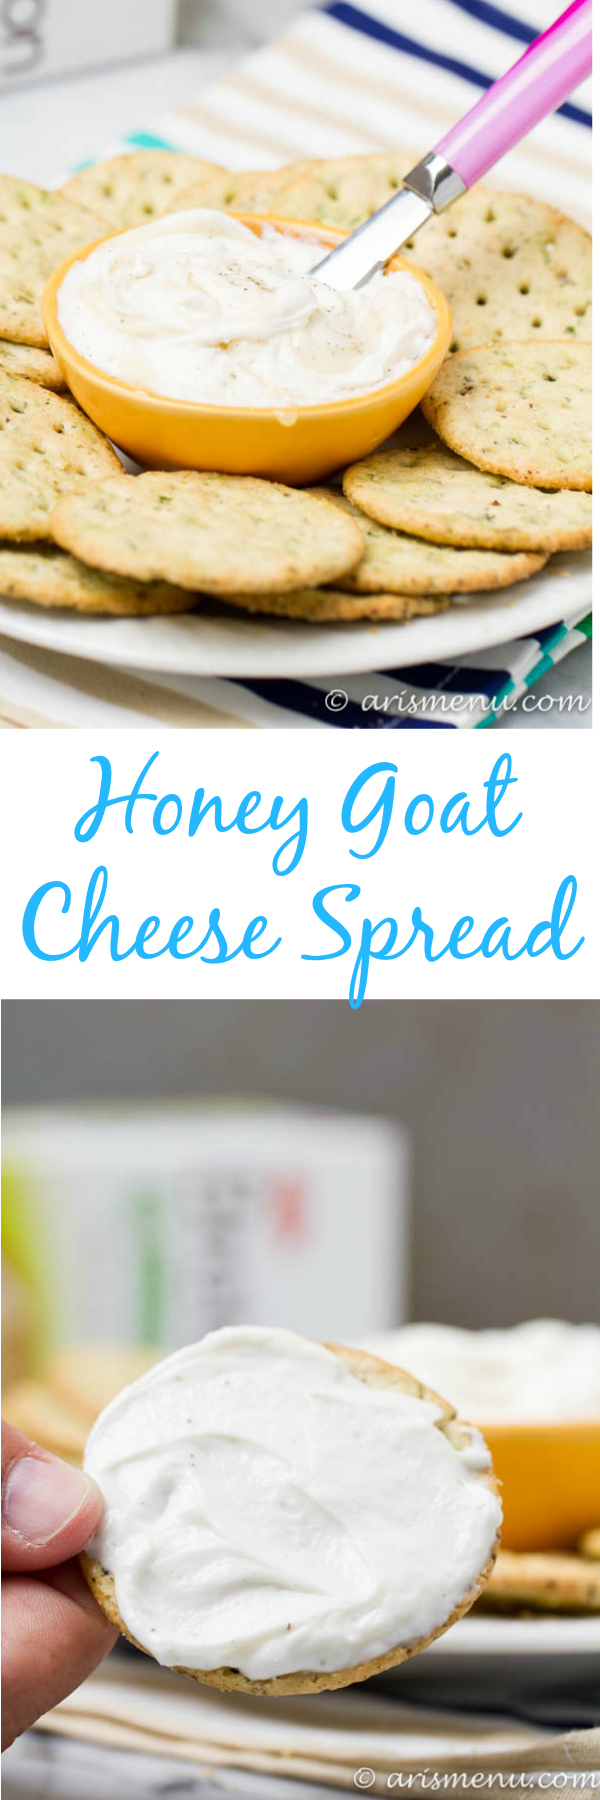 Honey Goat Cheese Spread: Smooth, creamy, sweet and tangy--the perfect spread to jazz up your crackers!